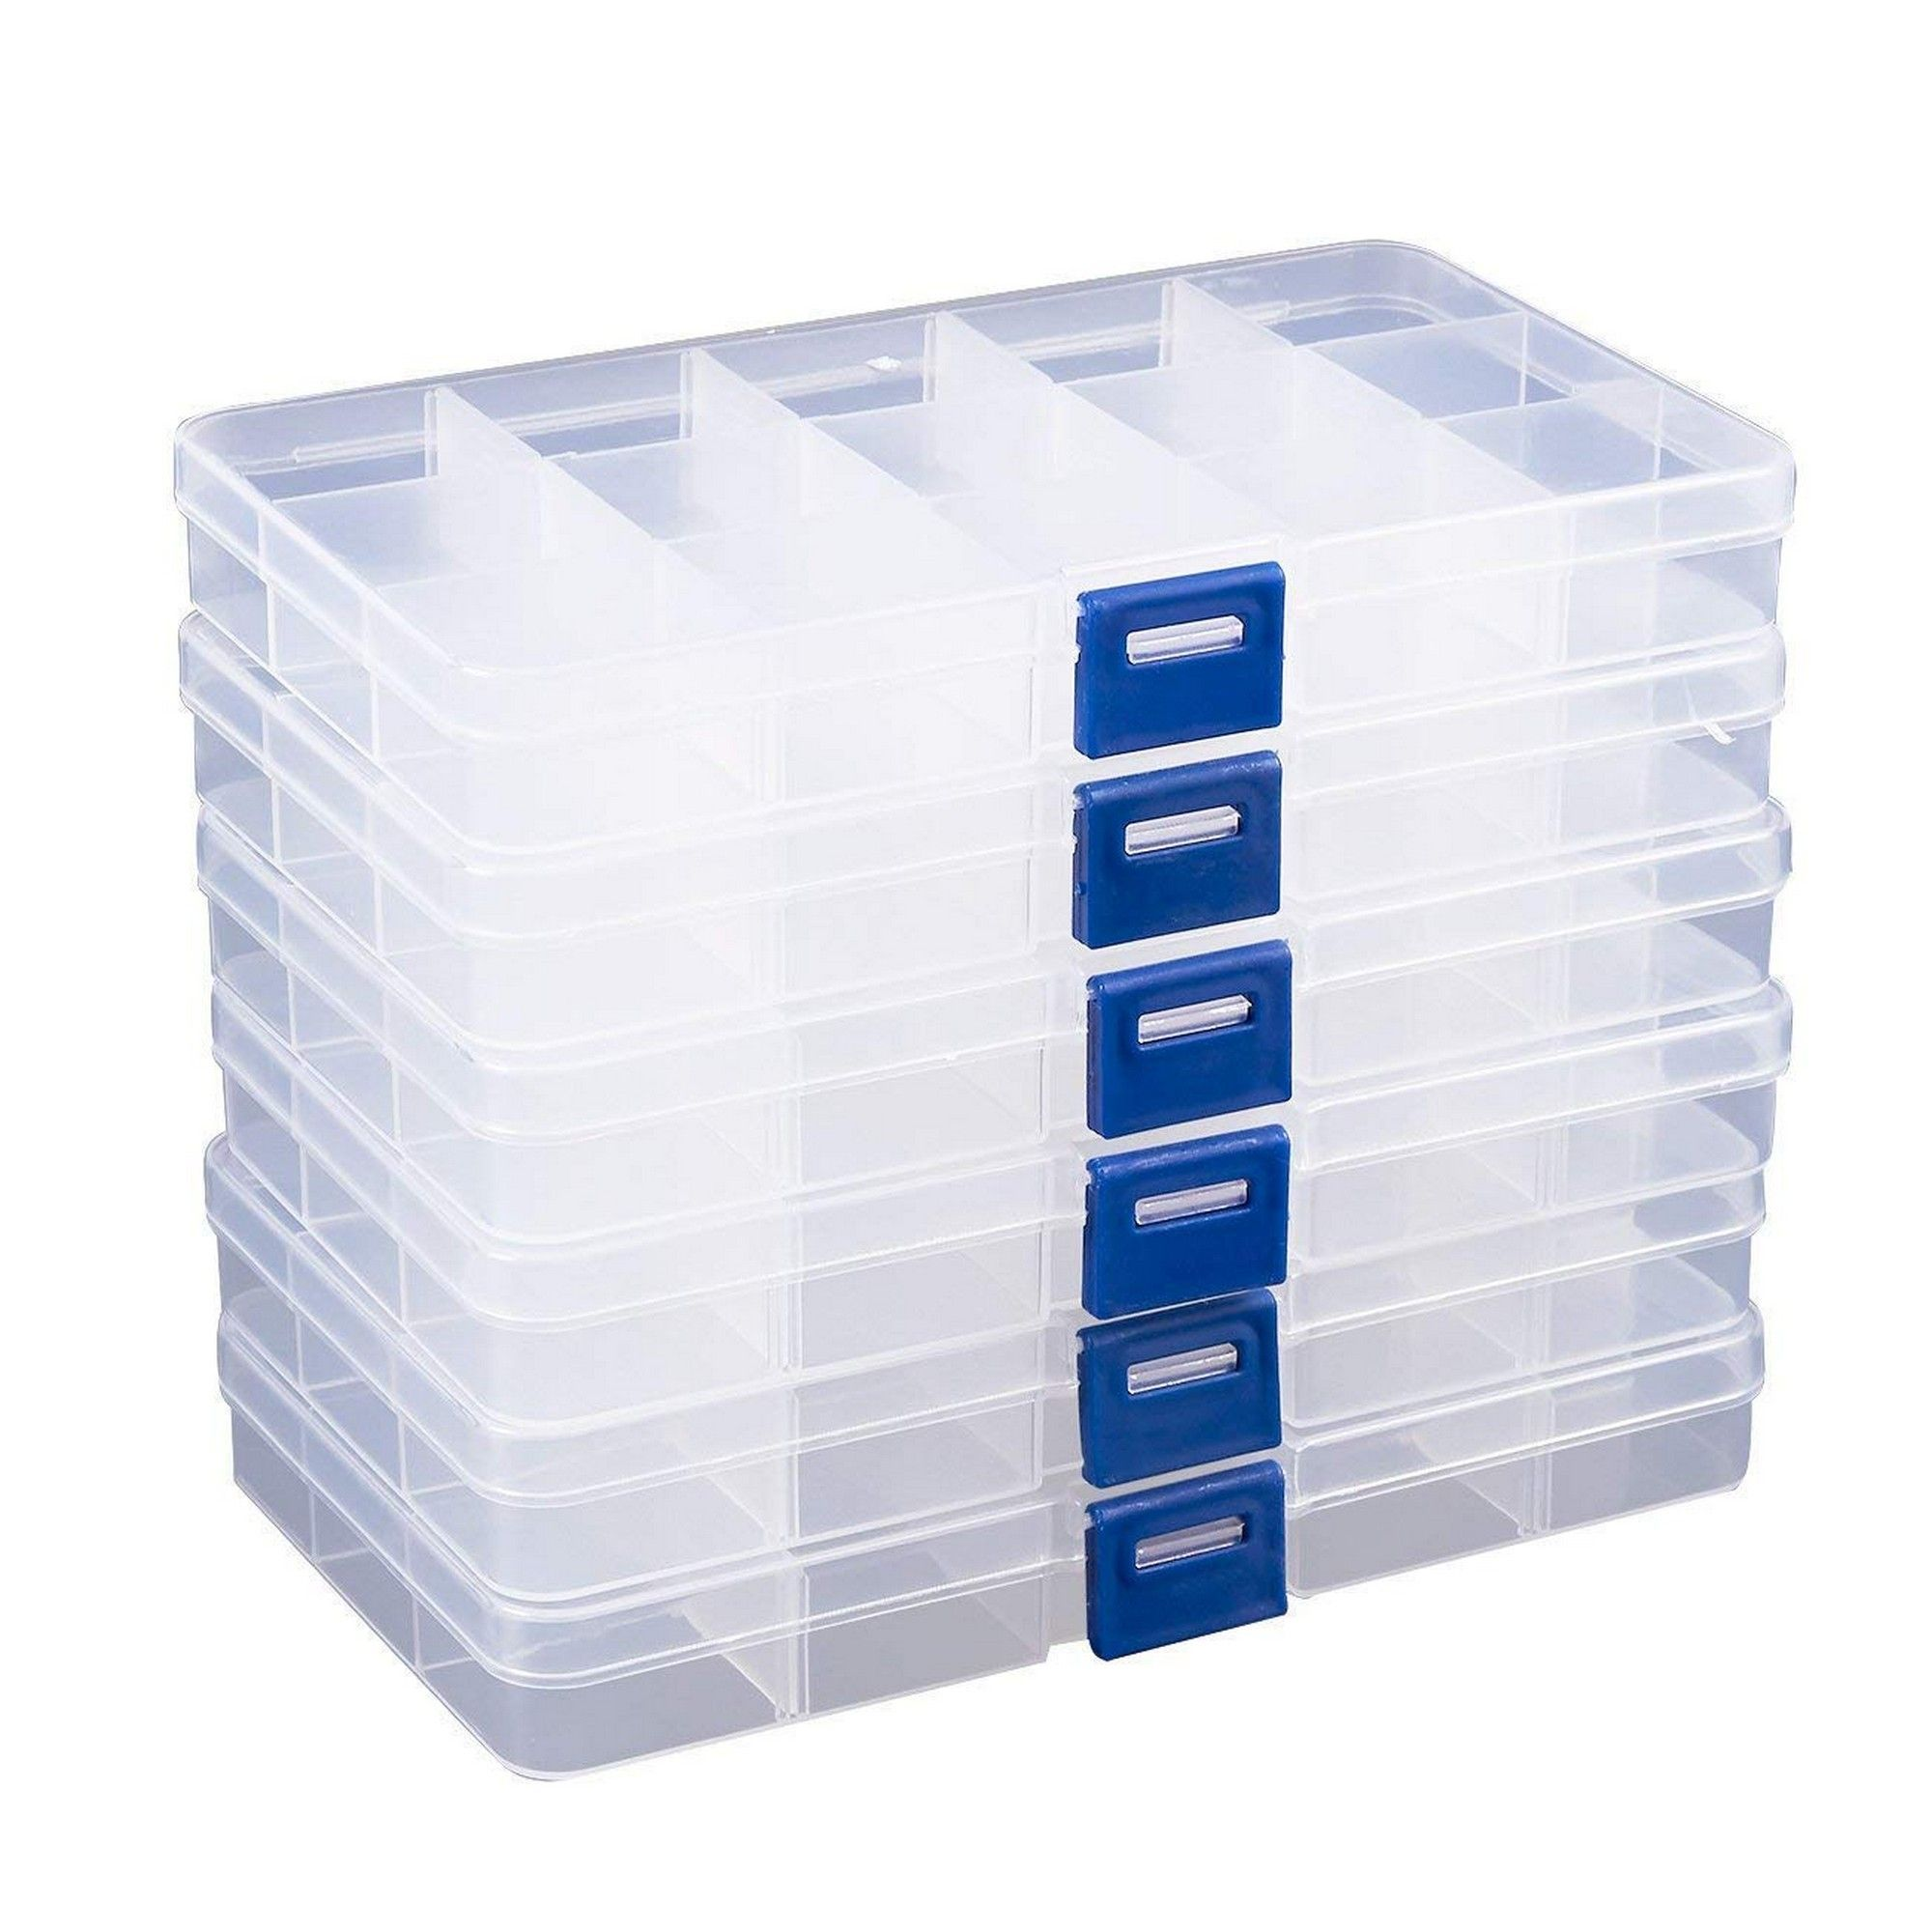 Plastic Jewellery Boxes for sale | Shop with Afterpay | eBay